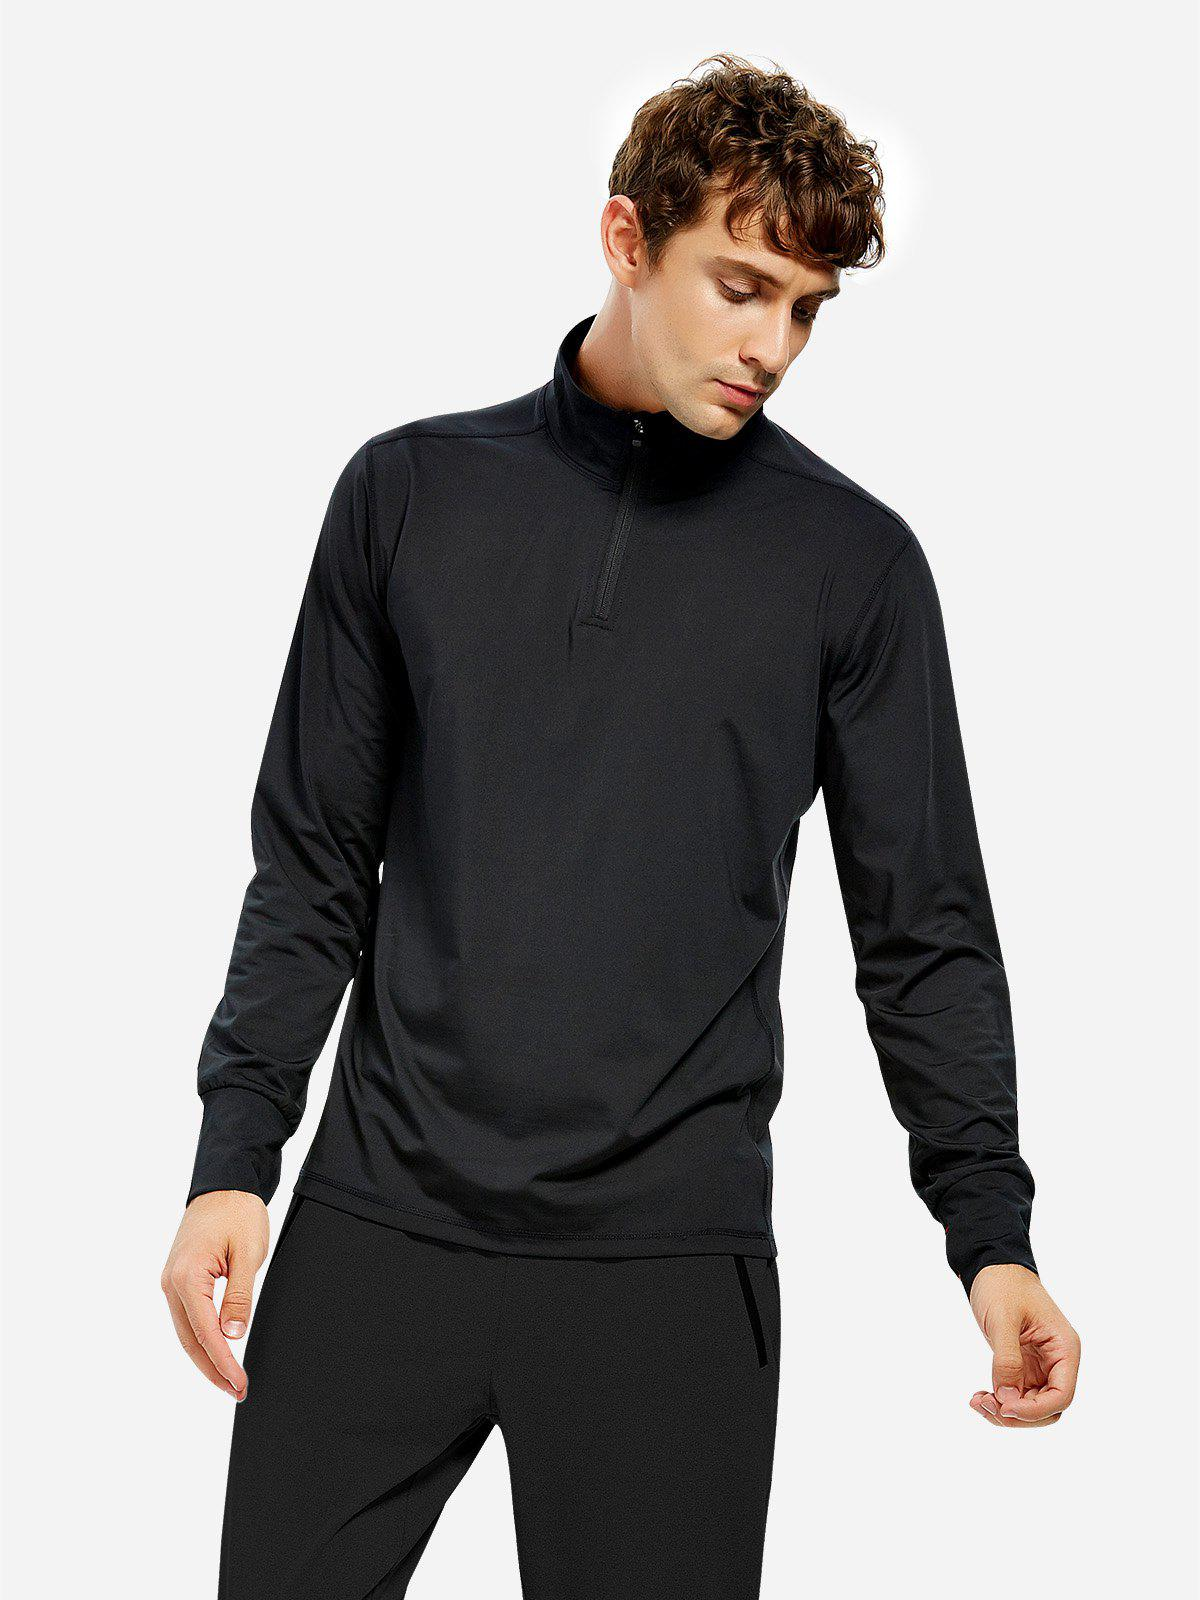 ZAN.STYLE Men Half Zip Long Sleeve Sweatshirt - BLACK M